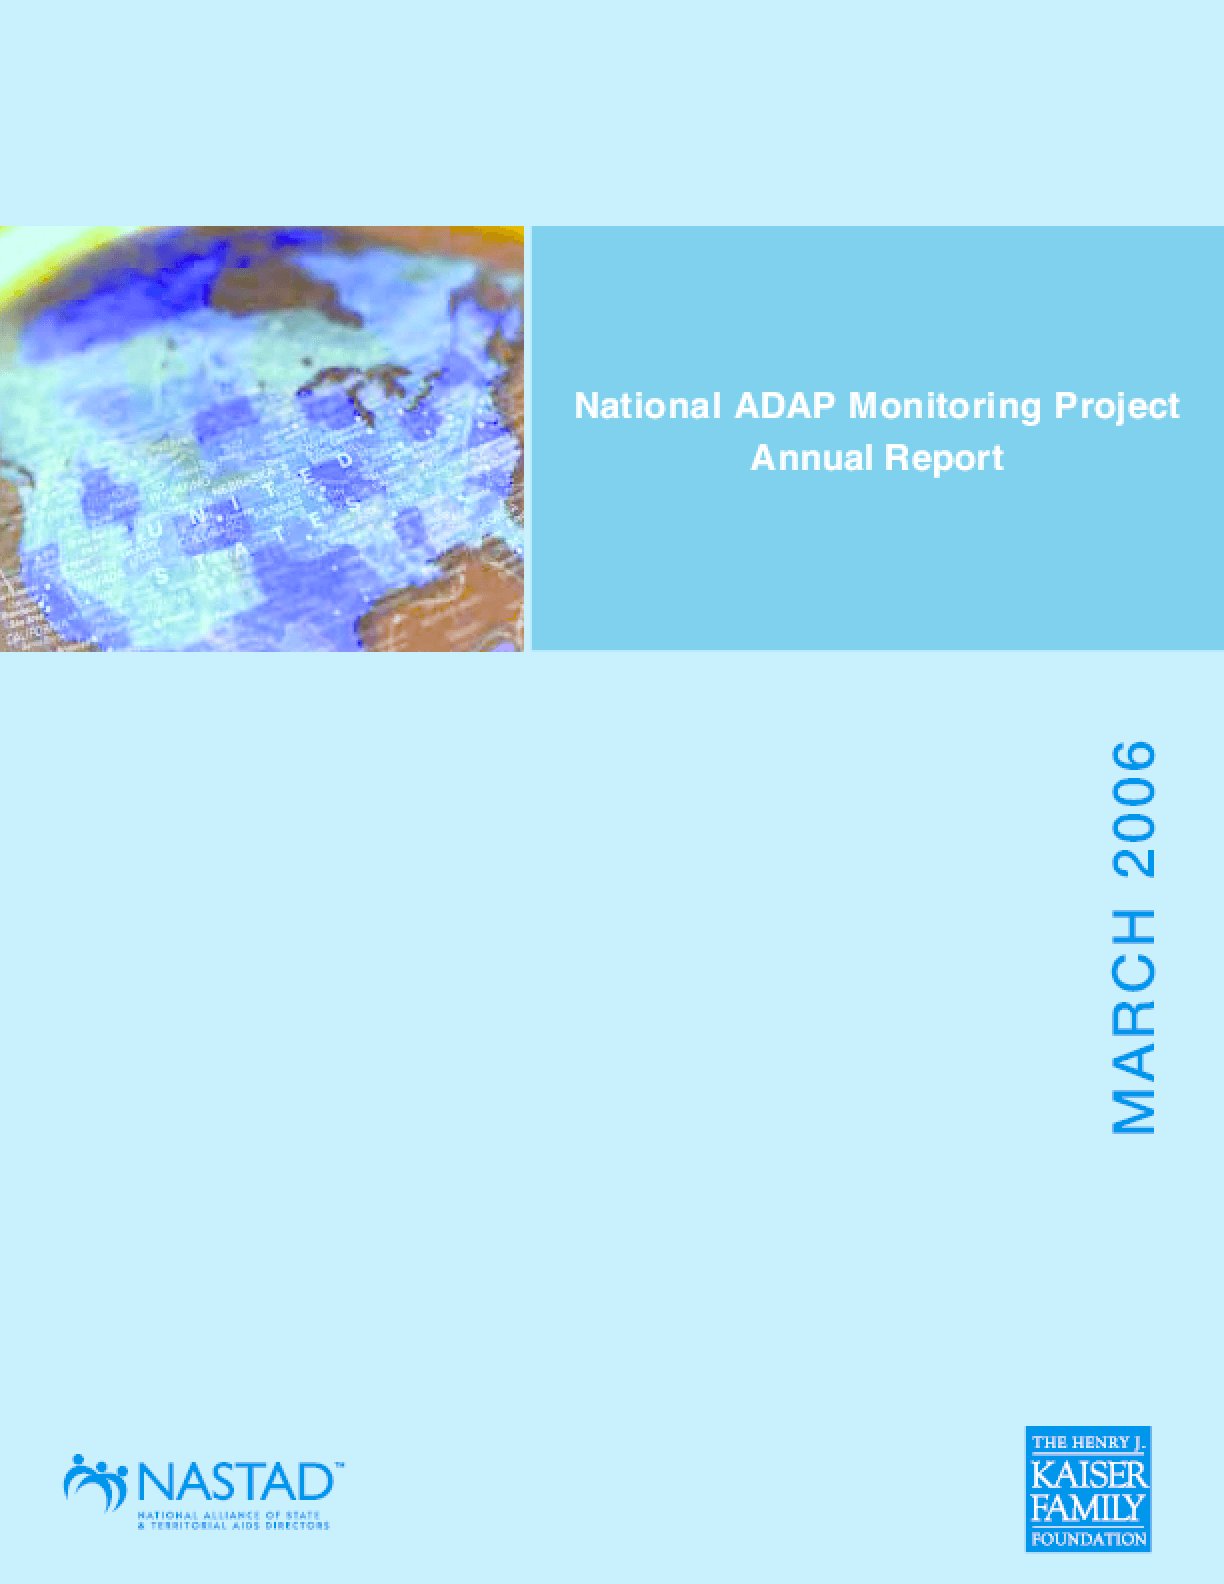 Henry J. Kaiser Family Foundation - National ADAP Monitoring Project Annual Report 2006